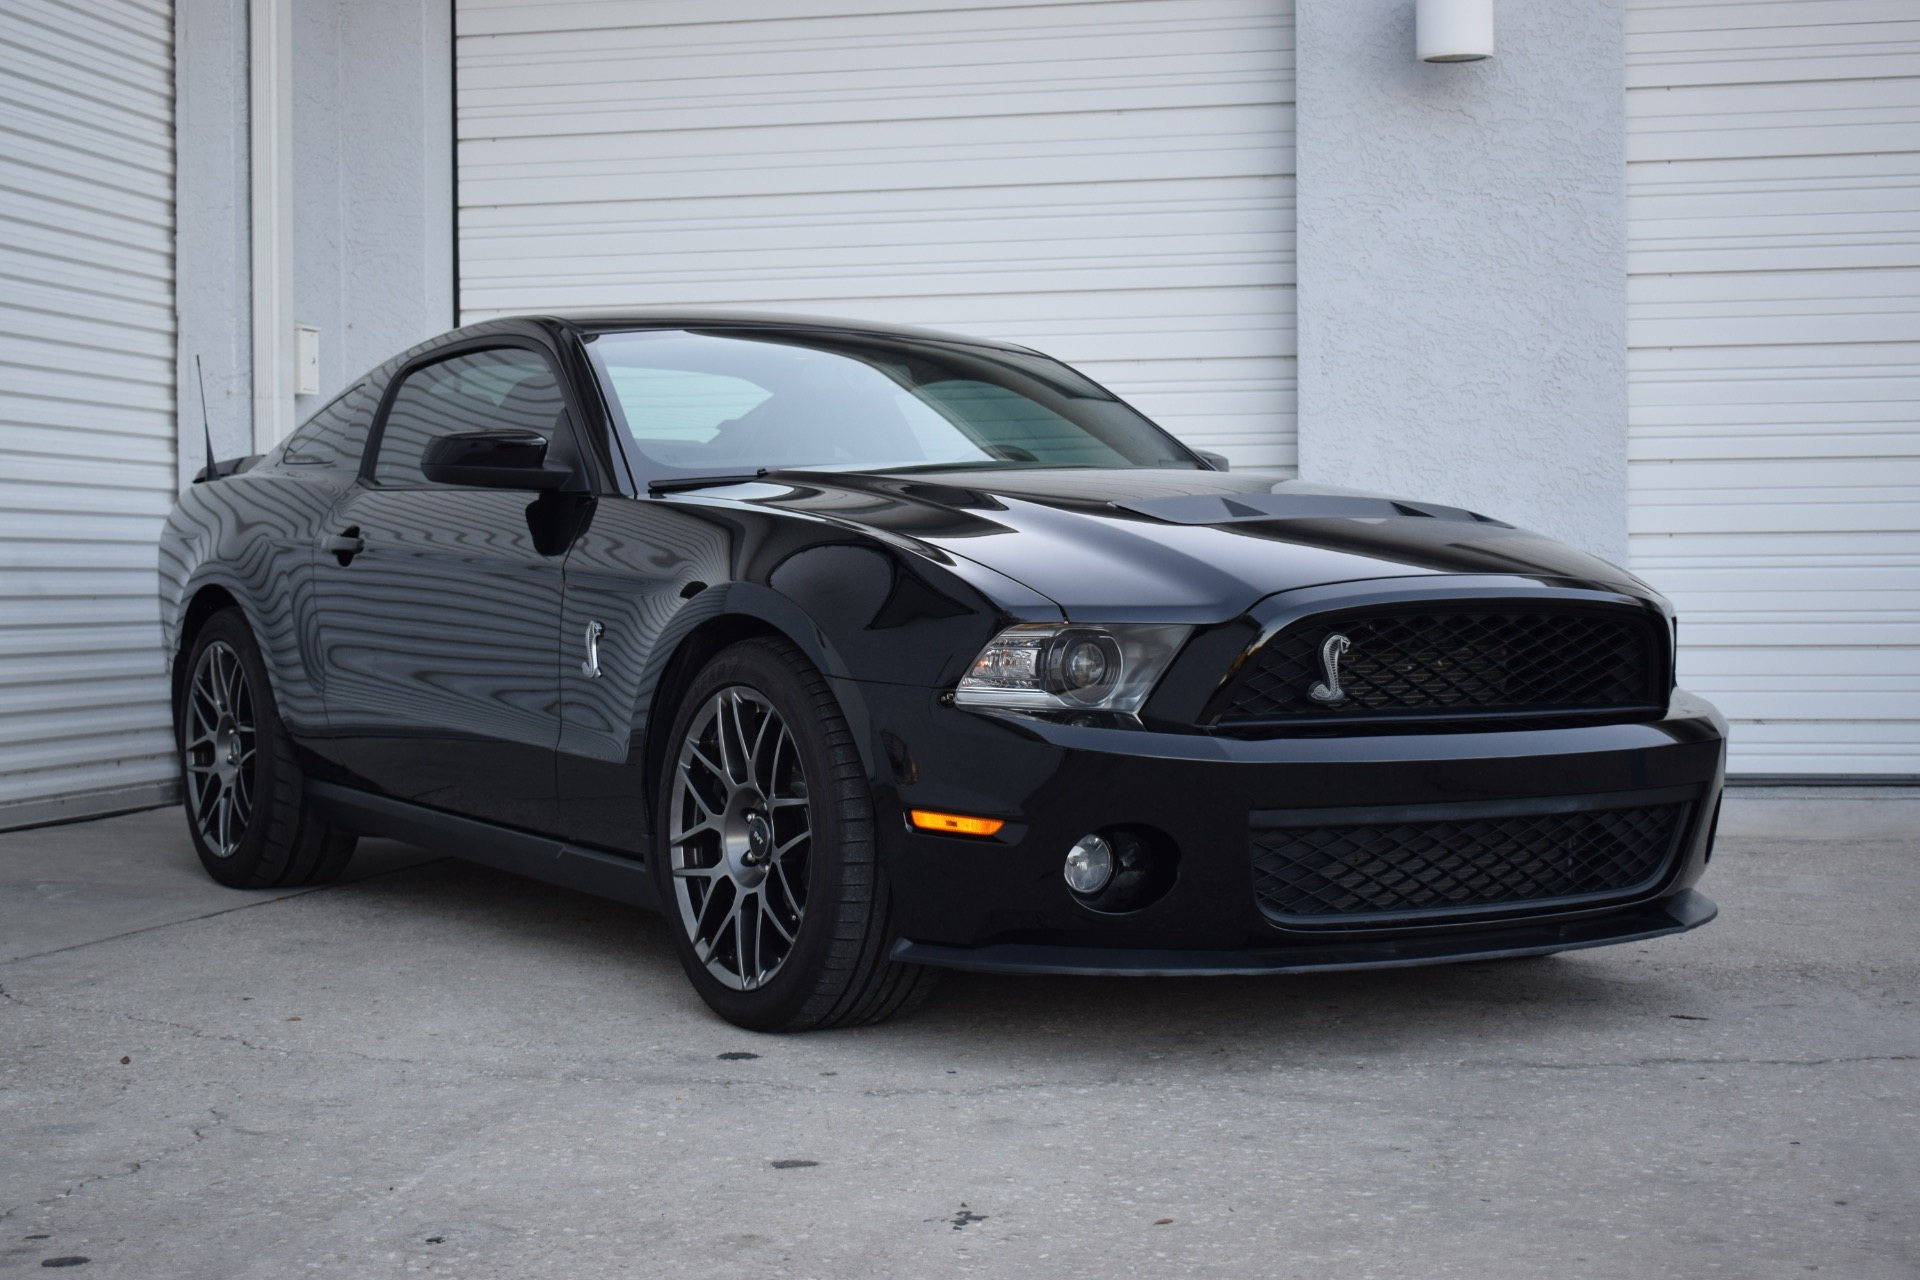 Used 2012 Ford Mustang Shelby GT500 Coupe 2D for sale Sold at Track and Field Motors in Safety Harbor FL 34695 1